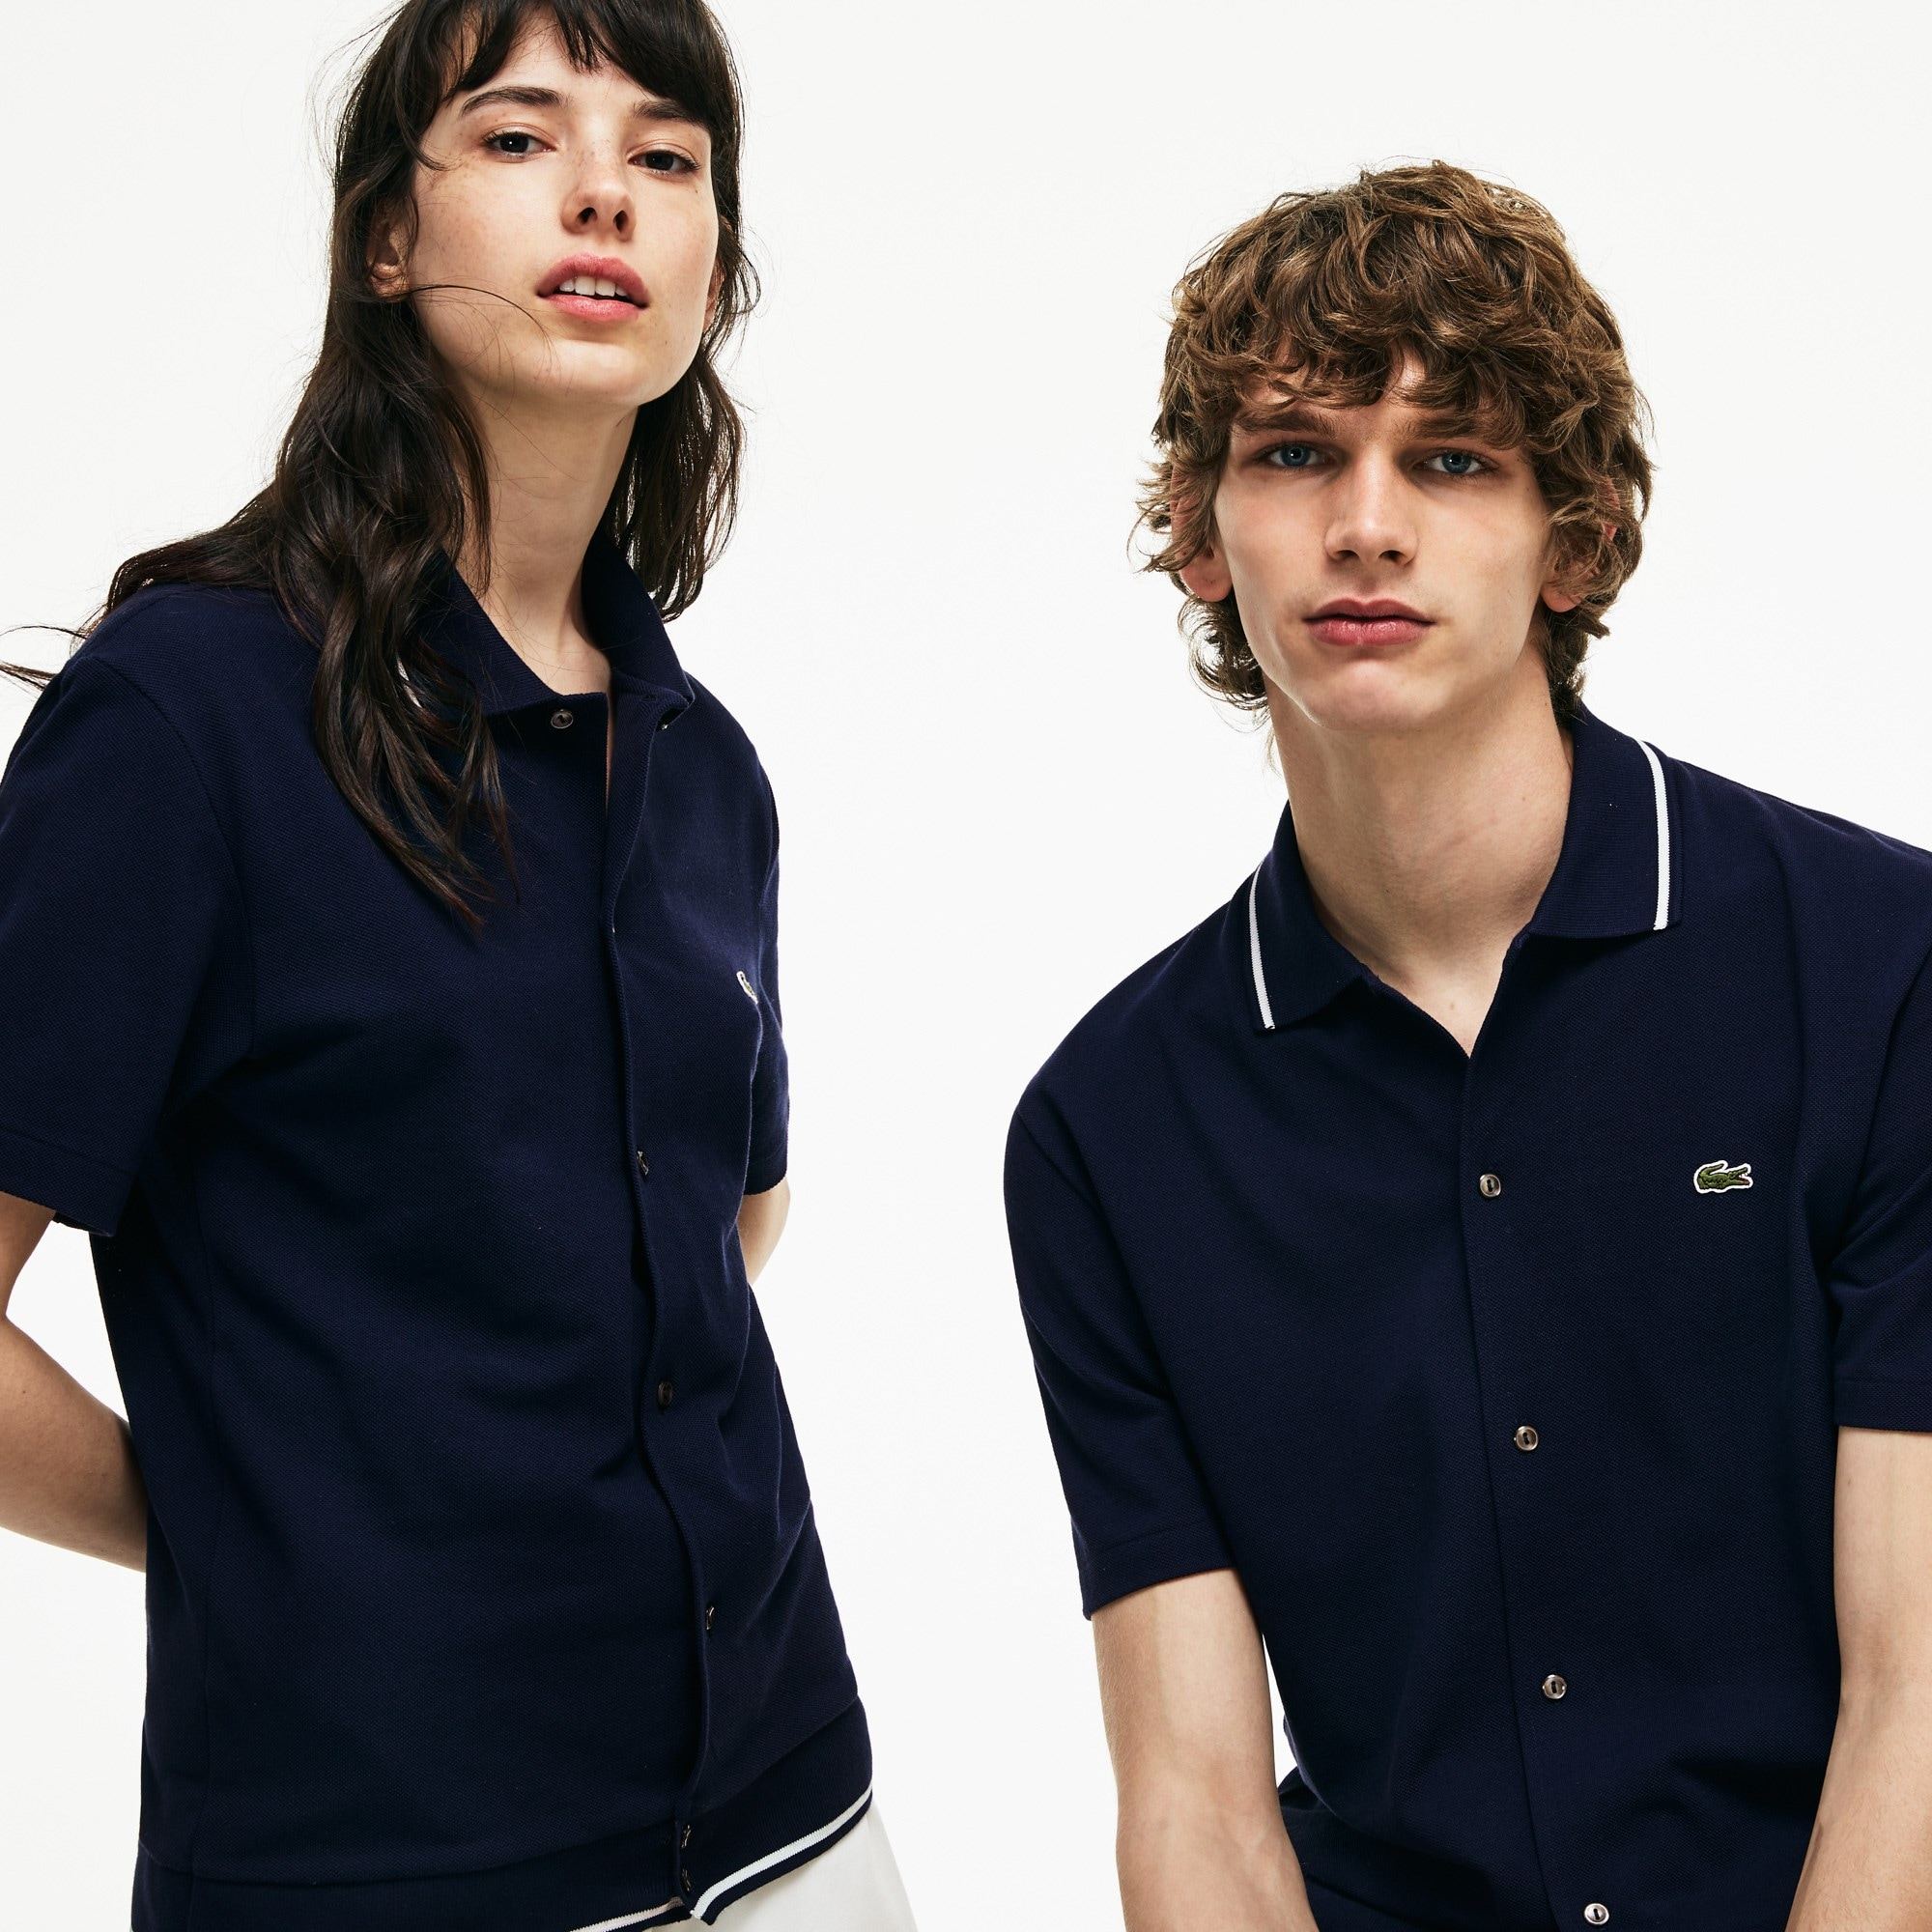 Unisex regular fit Lacoste polo, limited edition 85-jarig jubileum